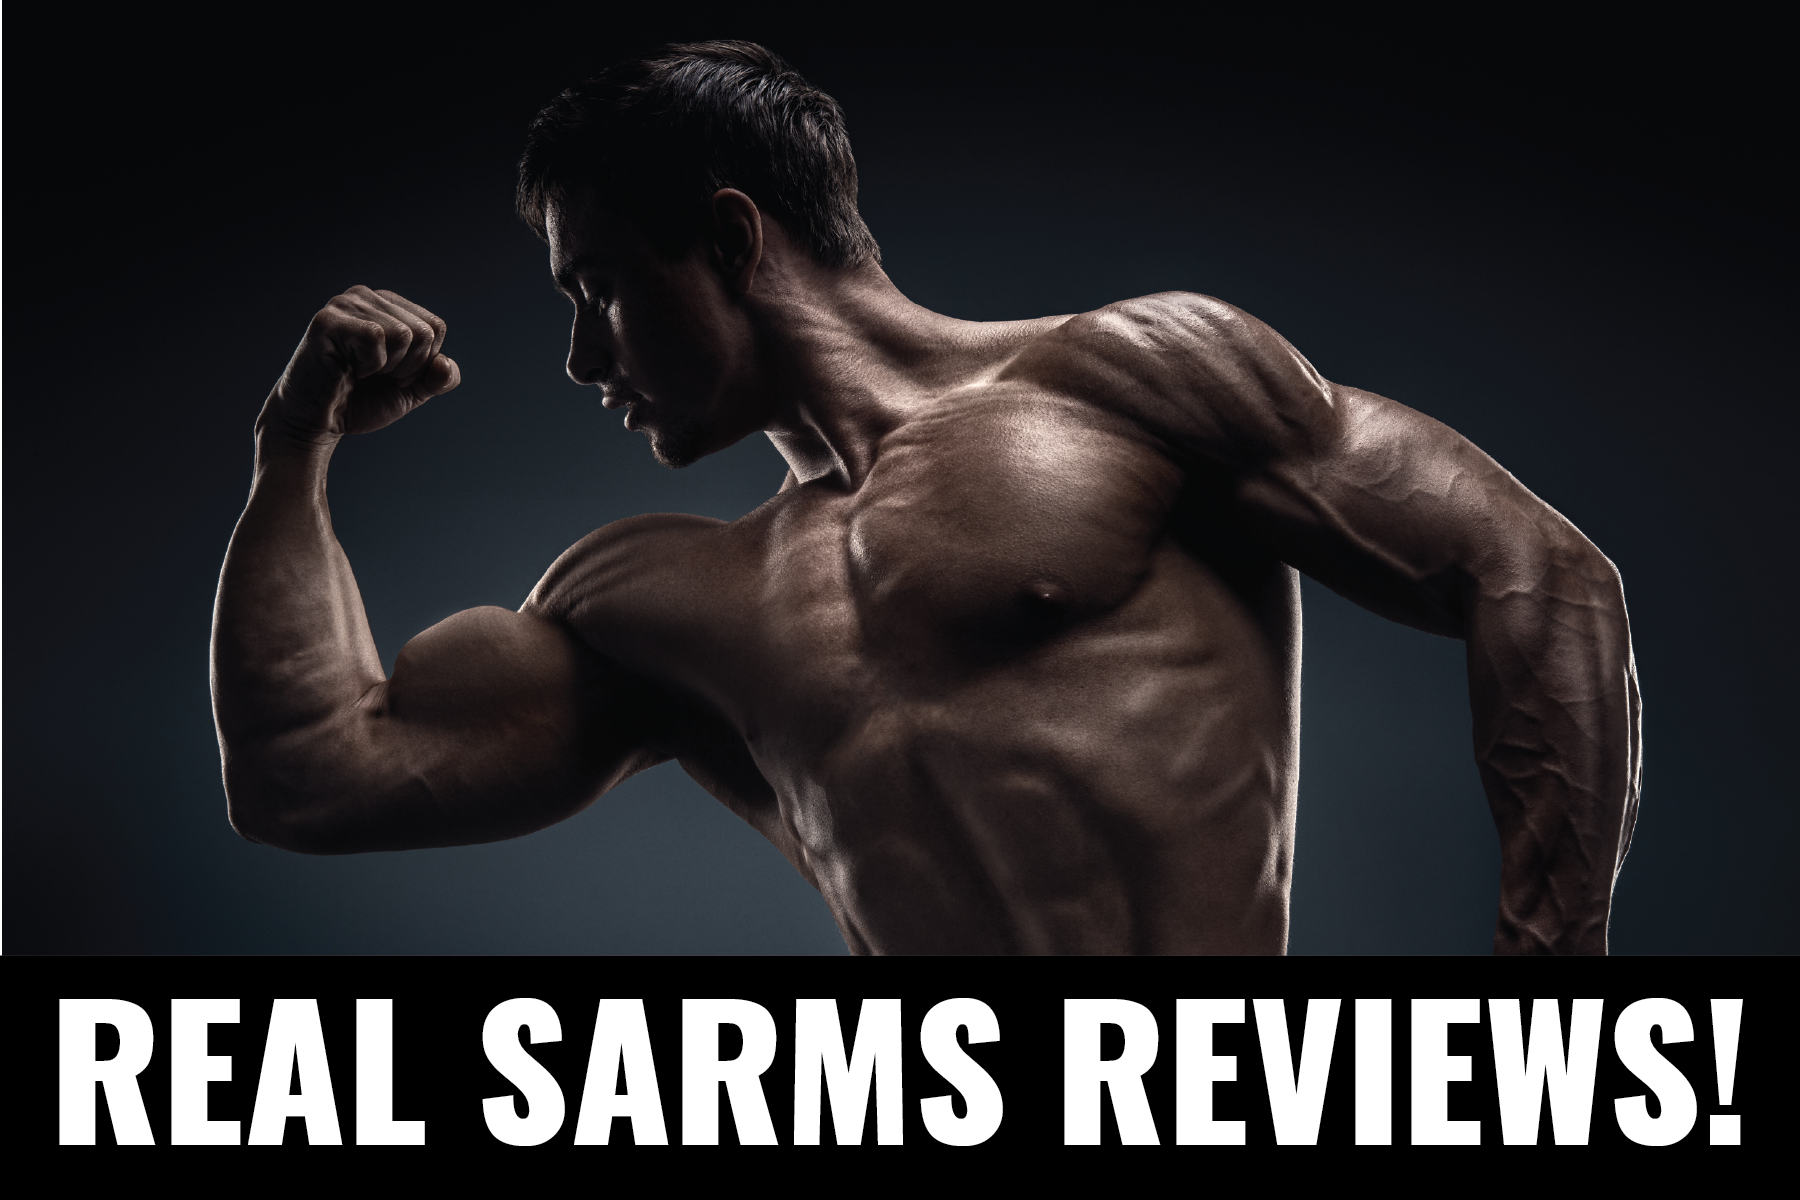 Real SARMS user reviews| 20+ written reviews from actual users